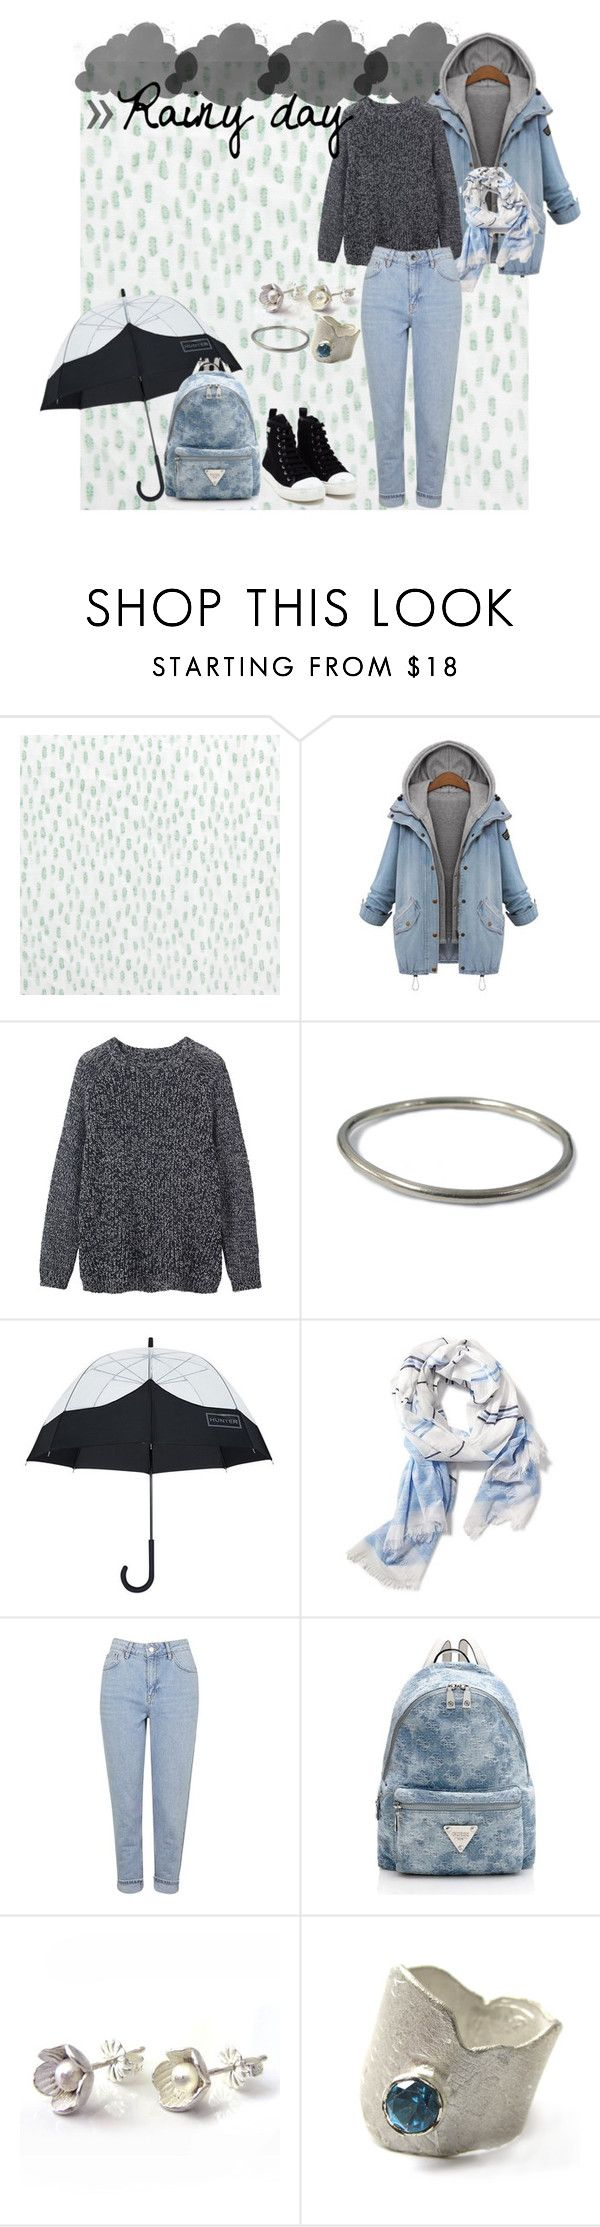 """""""Rainy day. ☁"""" by ann-sarah on Polyvore featuring mode, Bluebellgray, Toast, Hunter, Old Navy, Topshop, Catherine Marche et Moschino #lazyday #lazy #fashionset #fab #teenagers #trend #comfortable #comfortzone #choies #cold #coldoutside #rainyday #pull #sweatshirt #sheinside #hoodie #blue  #warm #converse #umbrella #jewells #catherinemarche #rings #earrings #bracelet #silver #backpack #music #2016 #polyvore #polyvorefashion #mochino #shoes #guess #topshop #jeans"""